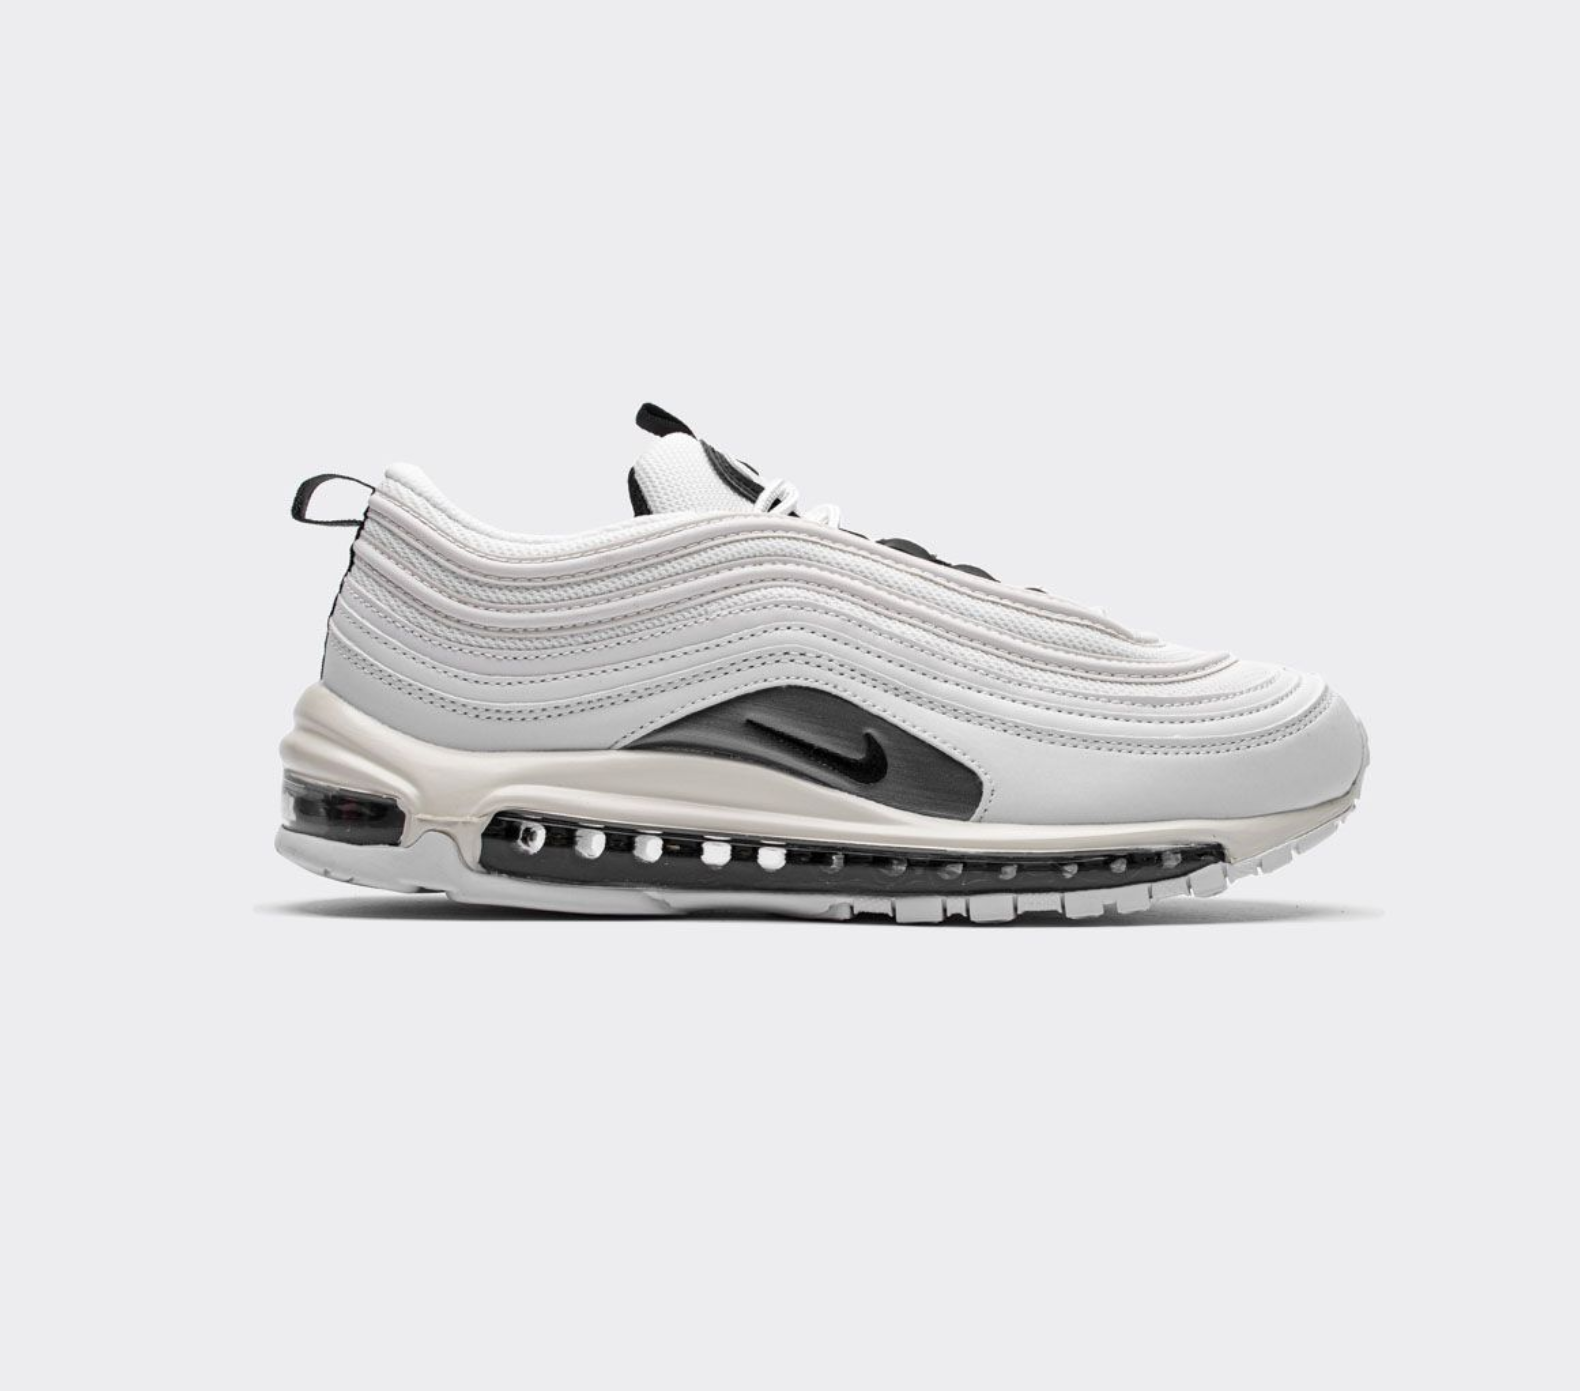 Save with new launch Nike Air Max 97 White Black Silver 921733-103